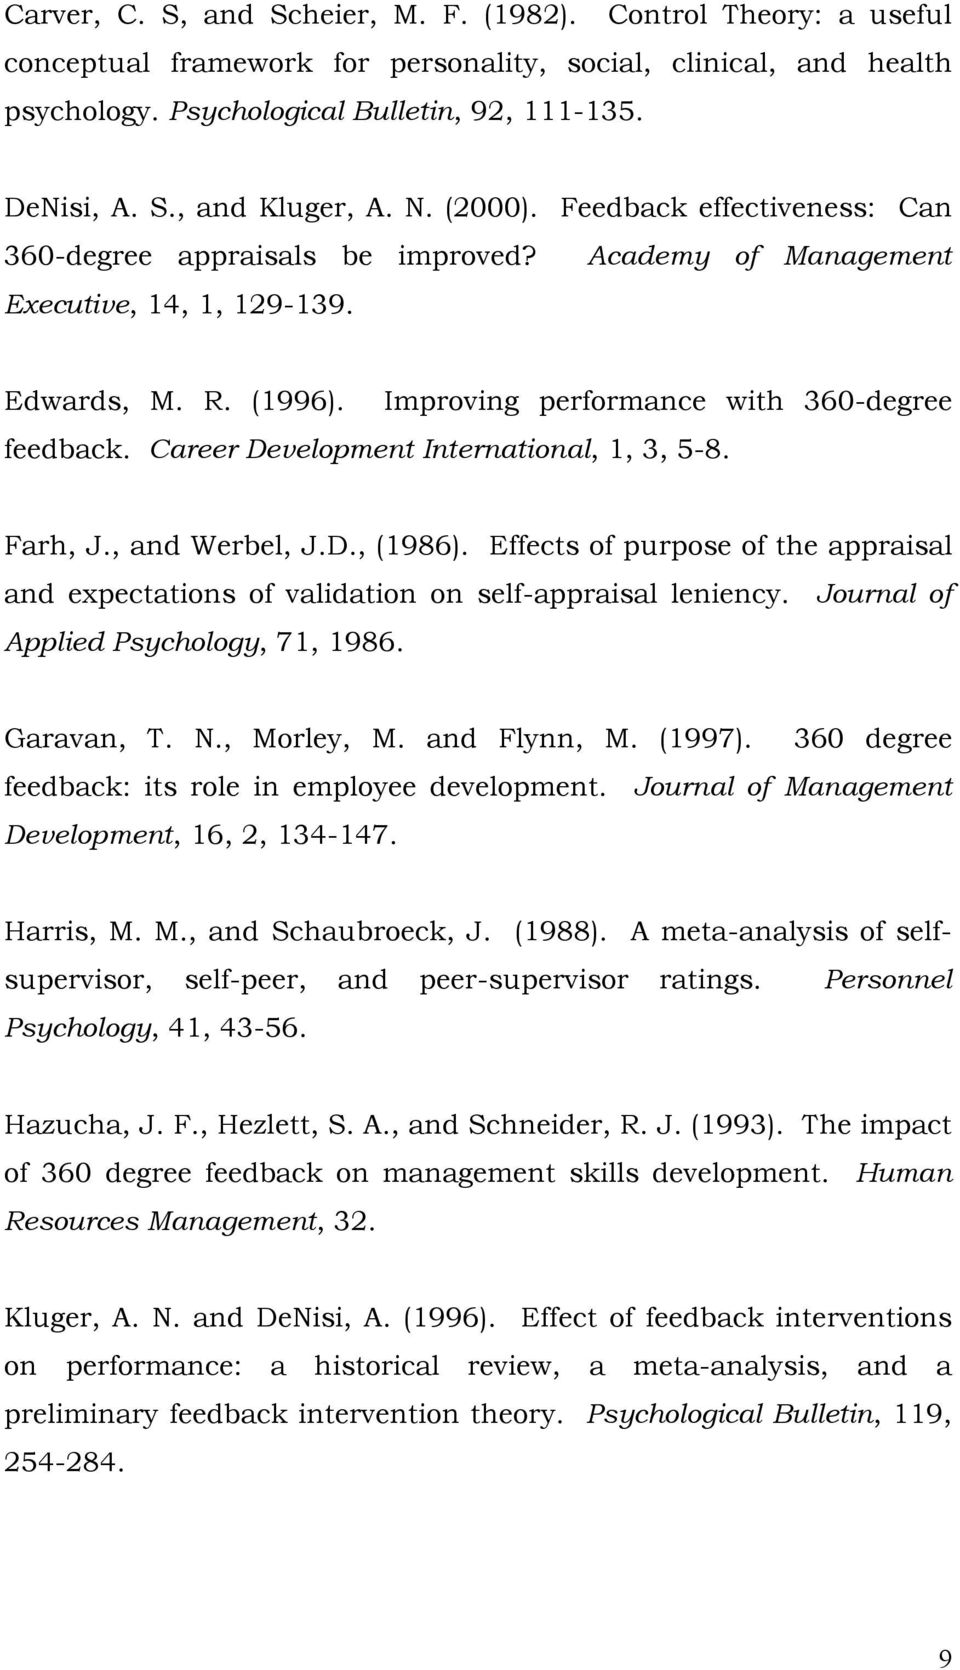 Career Development International, 1, 3, 5-8. Farh, J., and Werbel, J.D., (1986). Effects of purpose of the appraisal and expectations of validation on self-appraisal leniency.